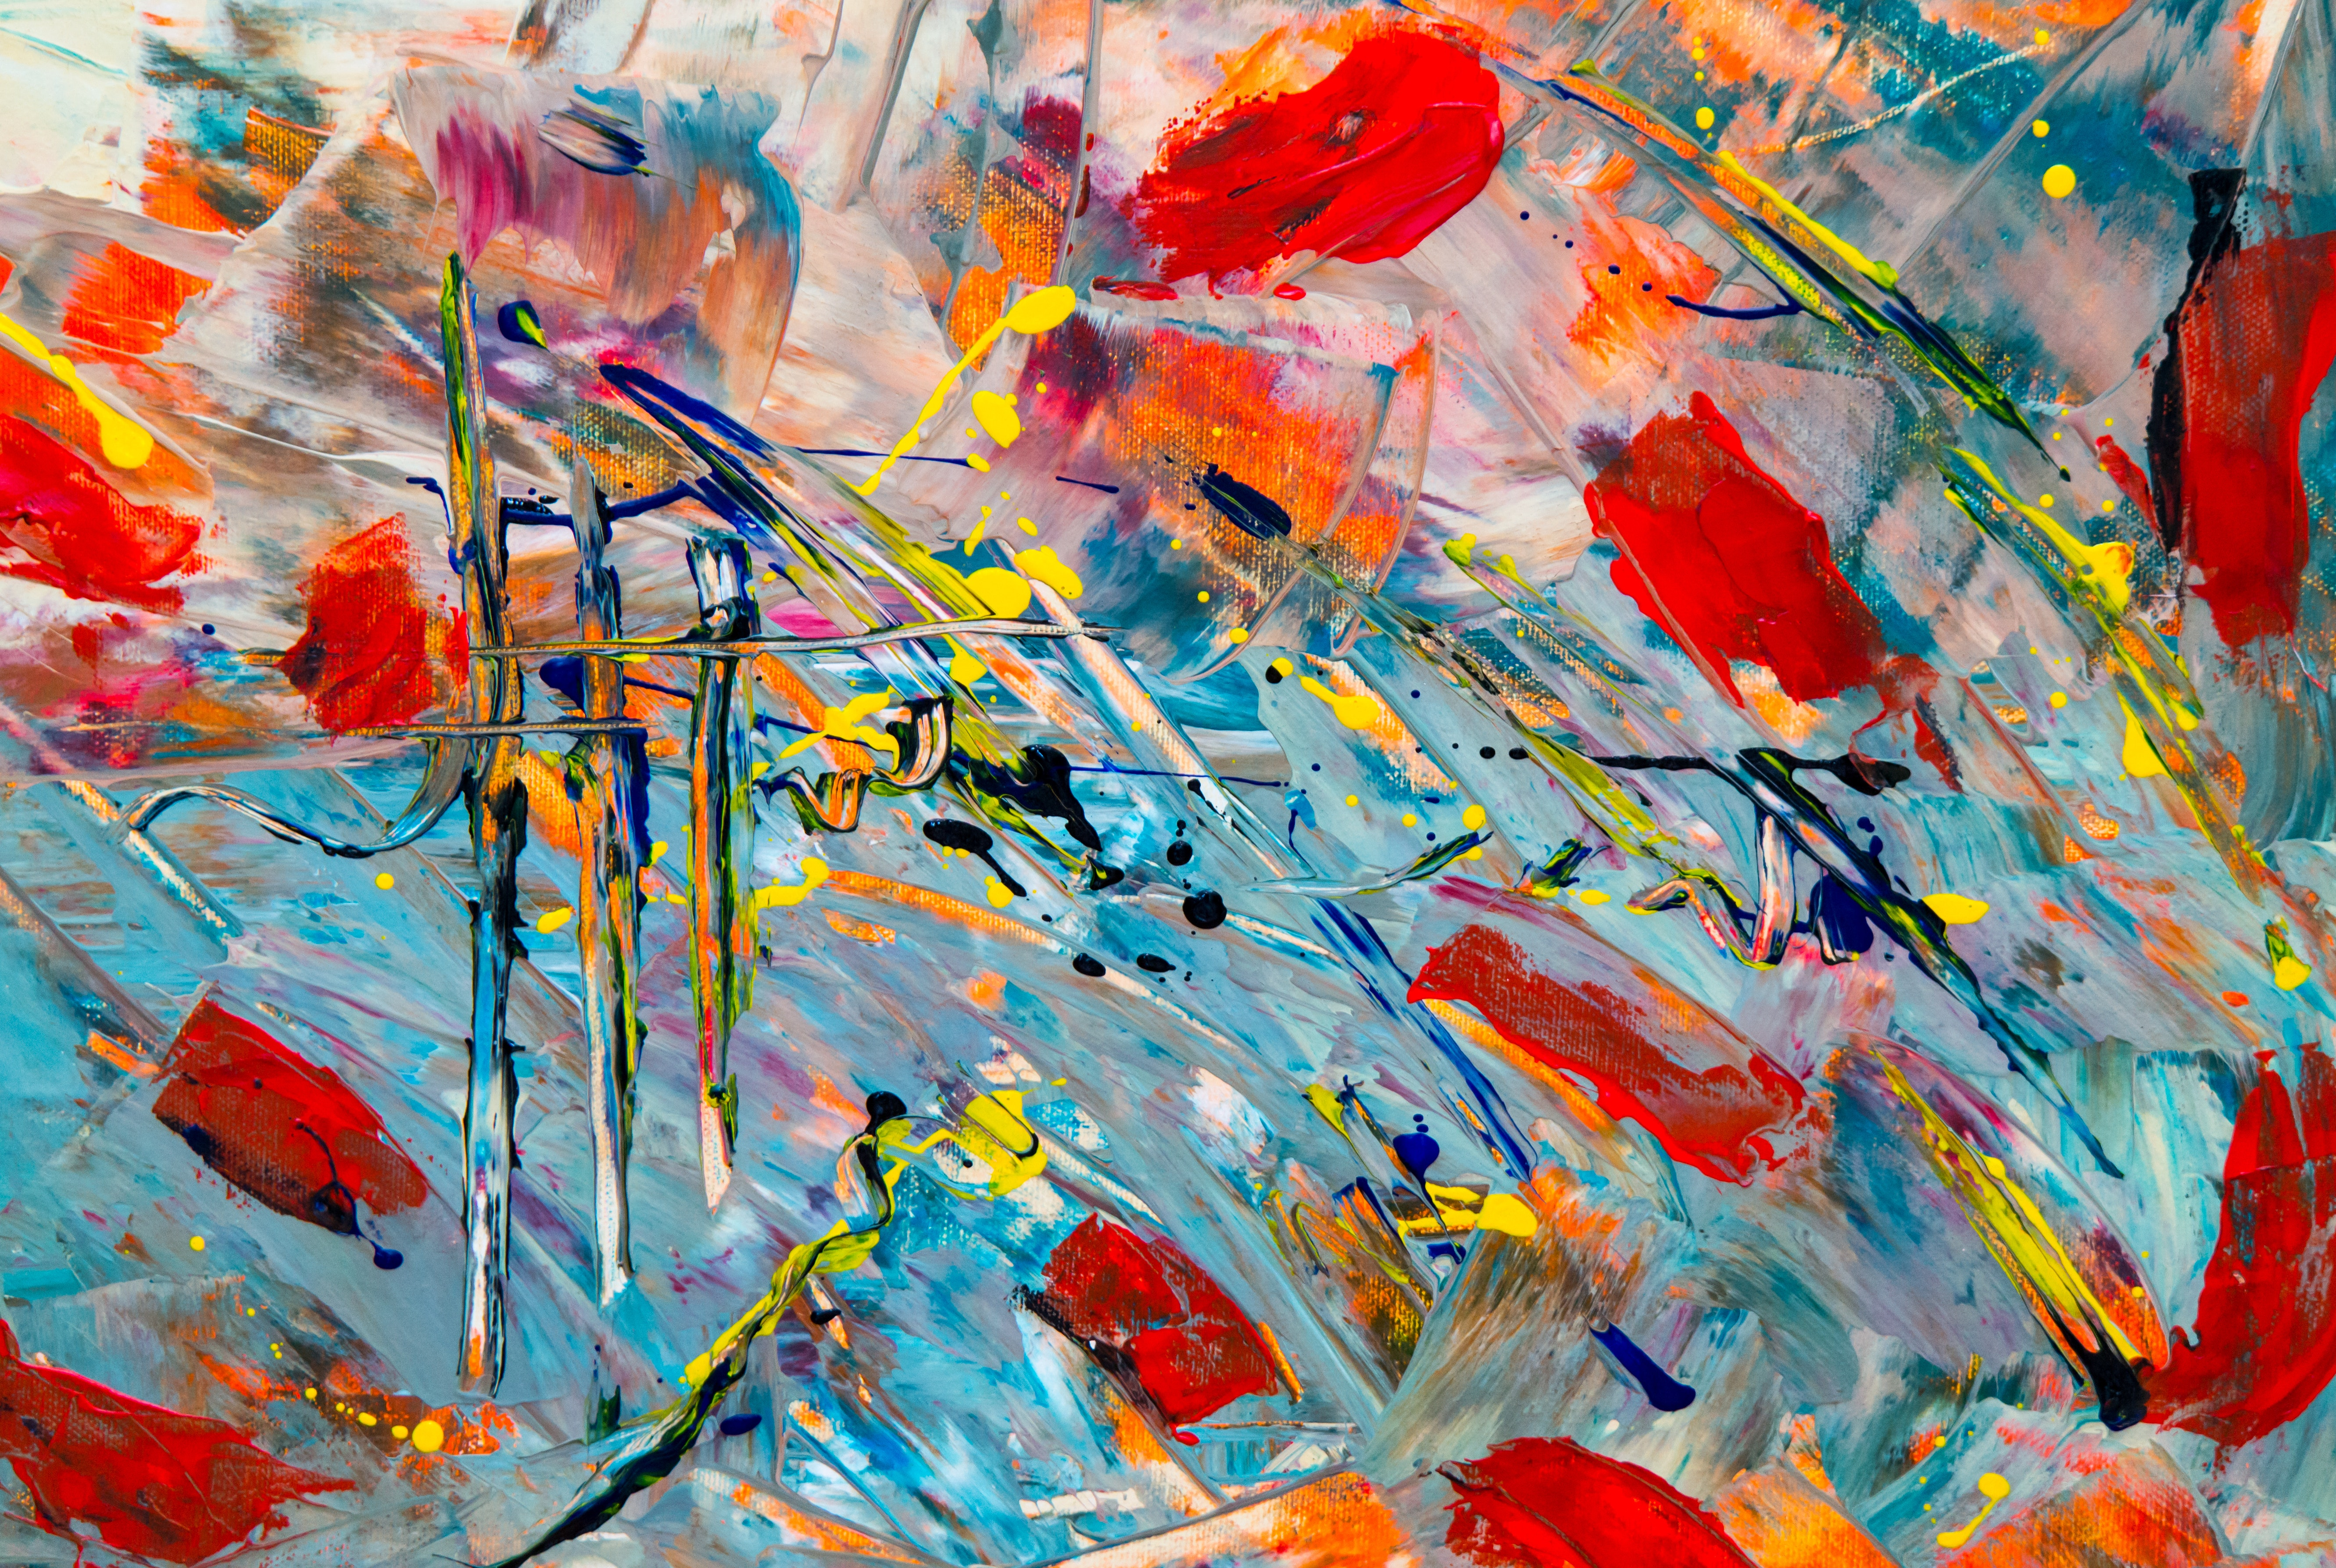 Multicolored Abstract Painting Free Stock Photo